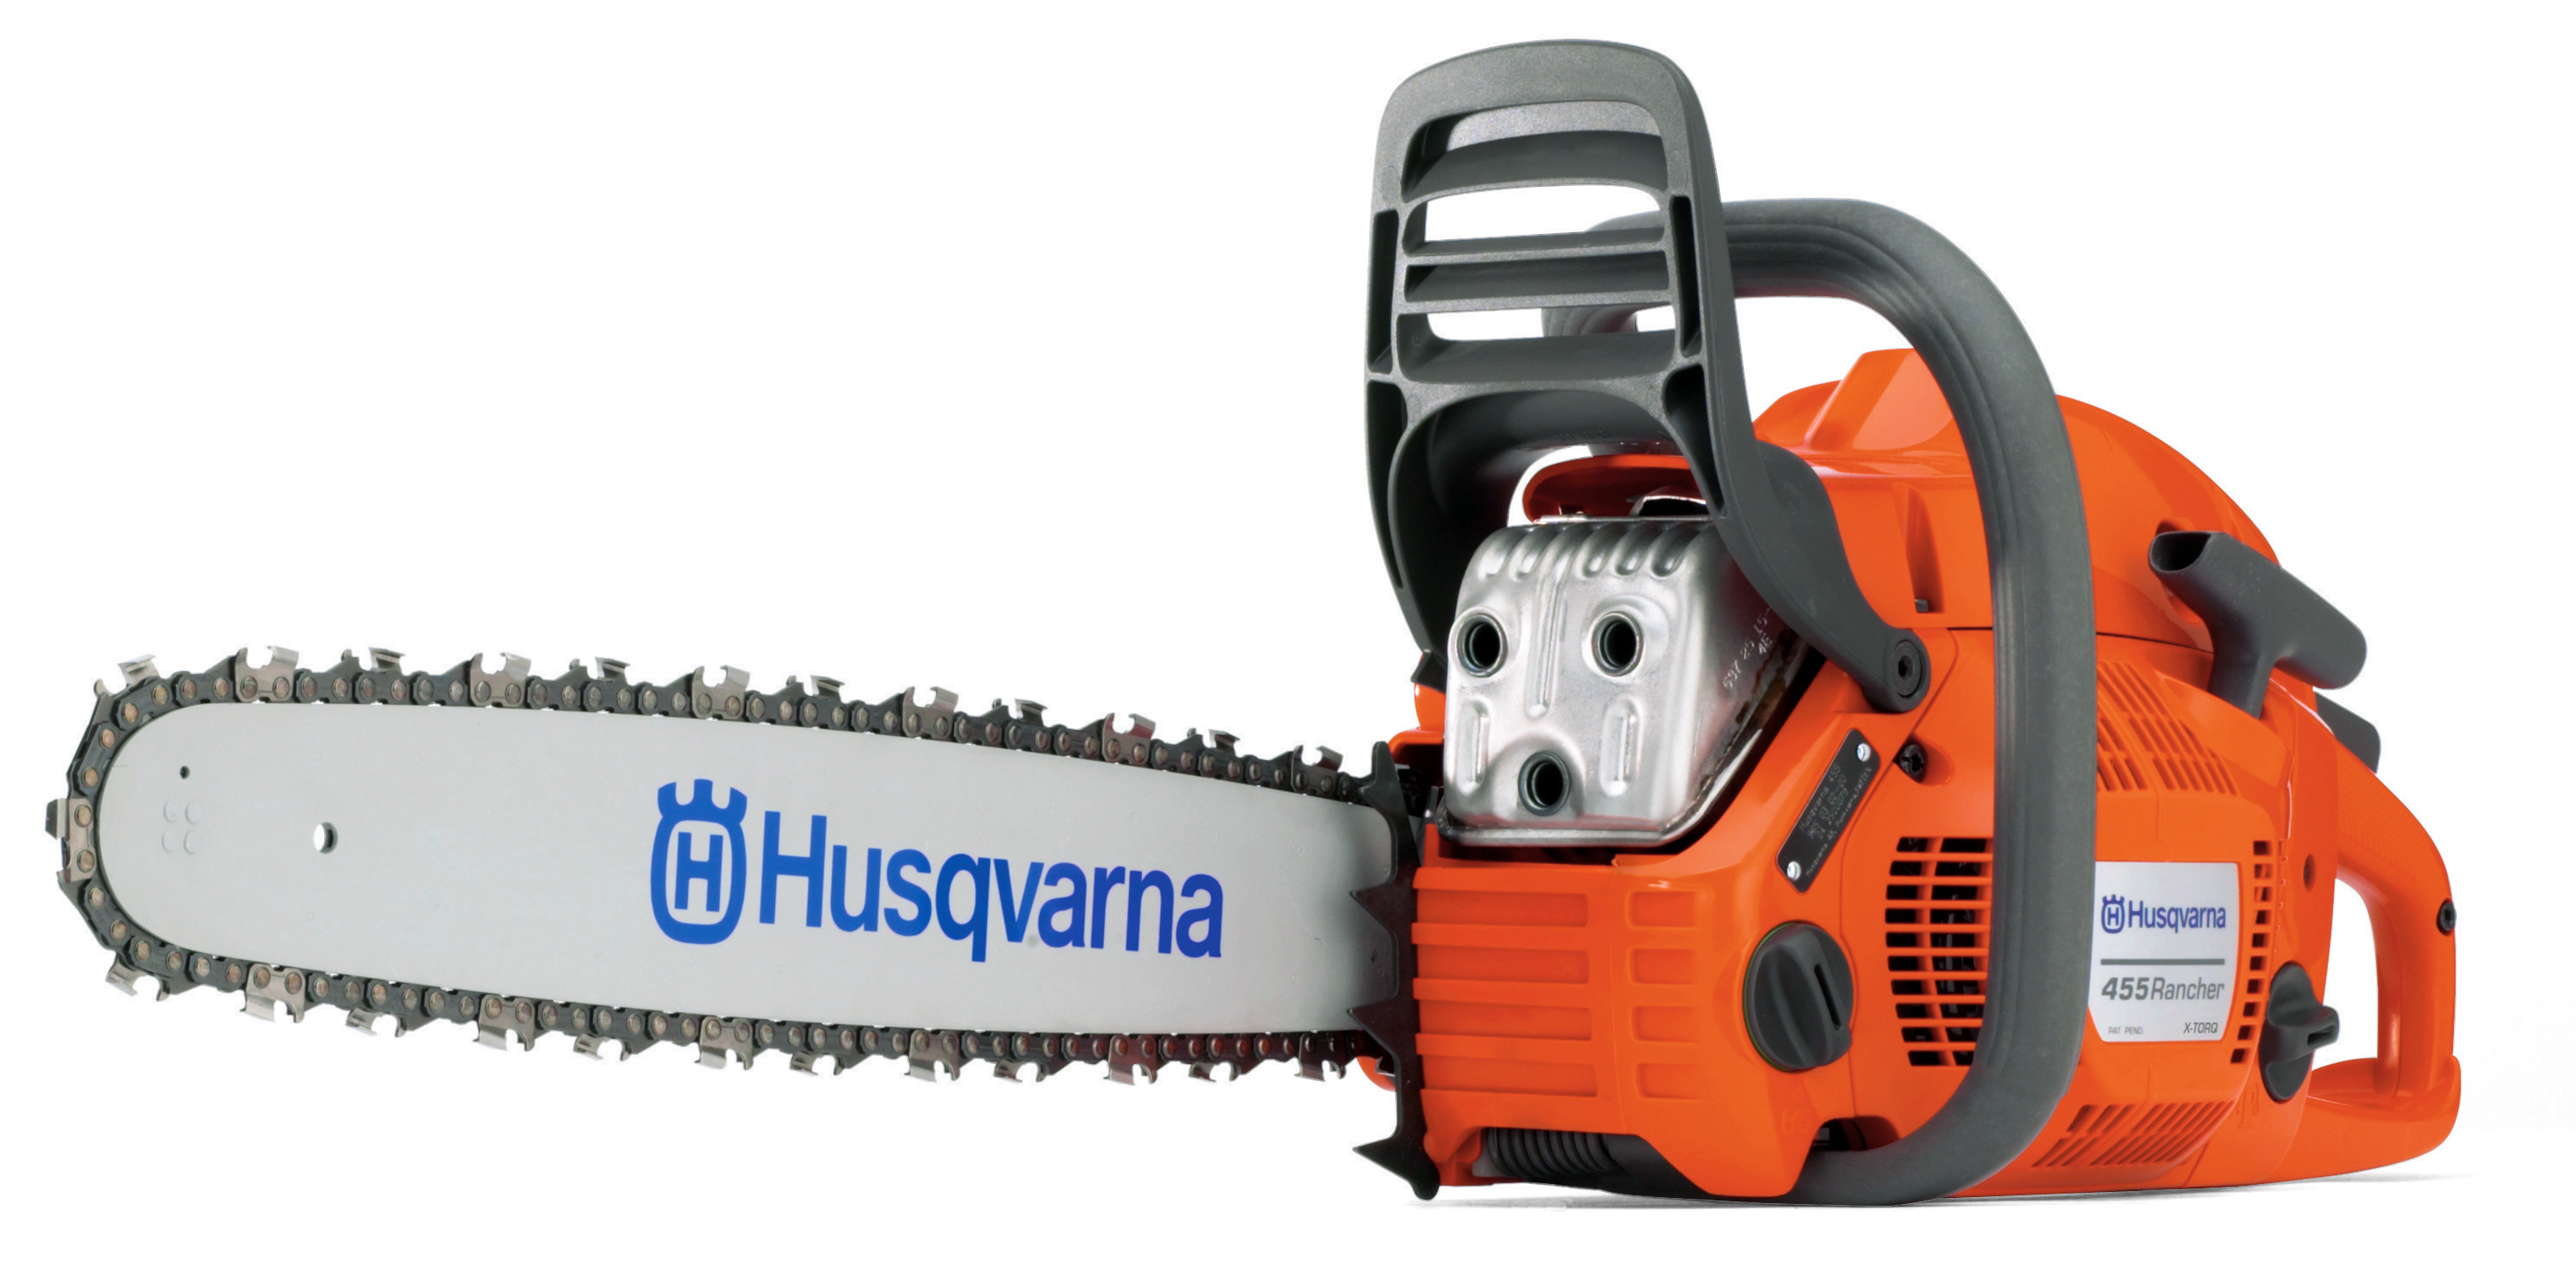 Image for 455 Rancher Gas Chainsaw                                                                                                         from HusqvarnaB2C